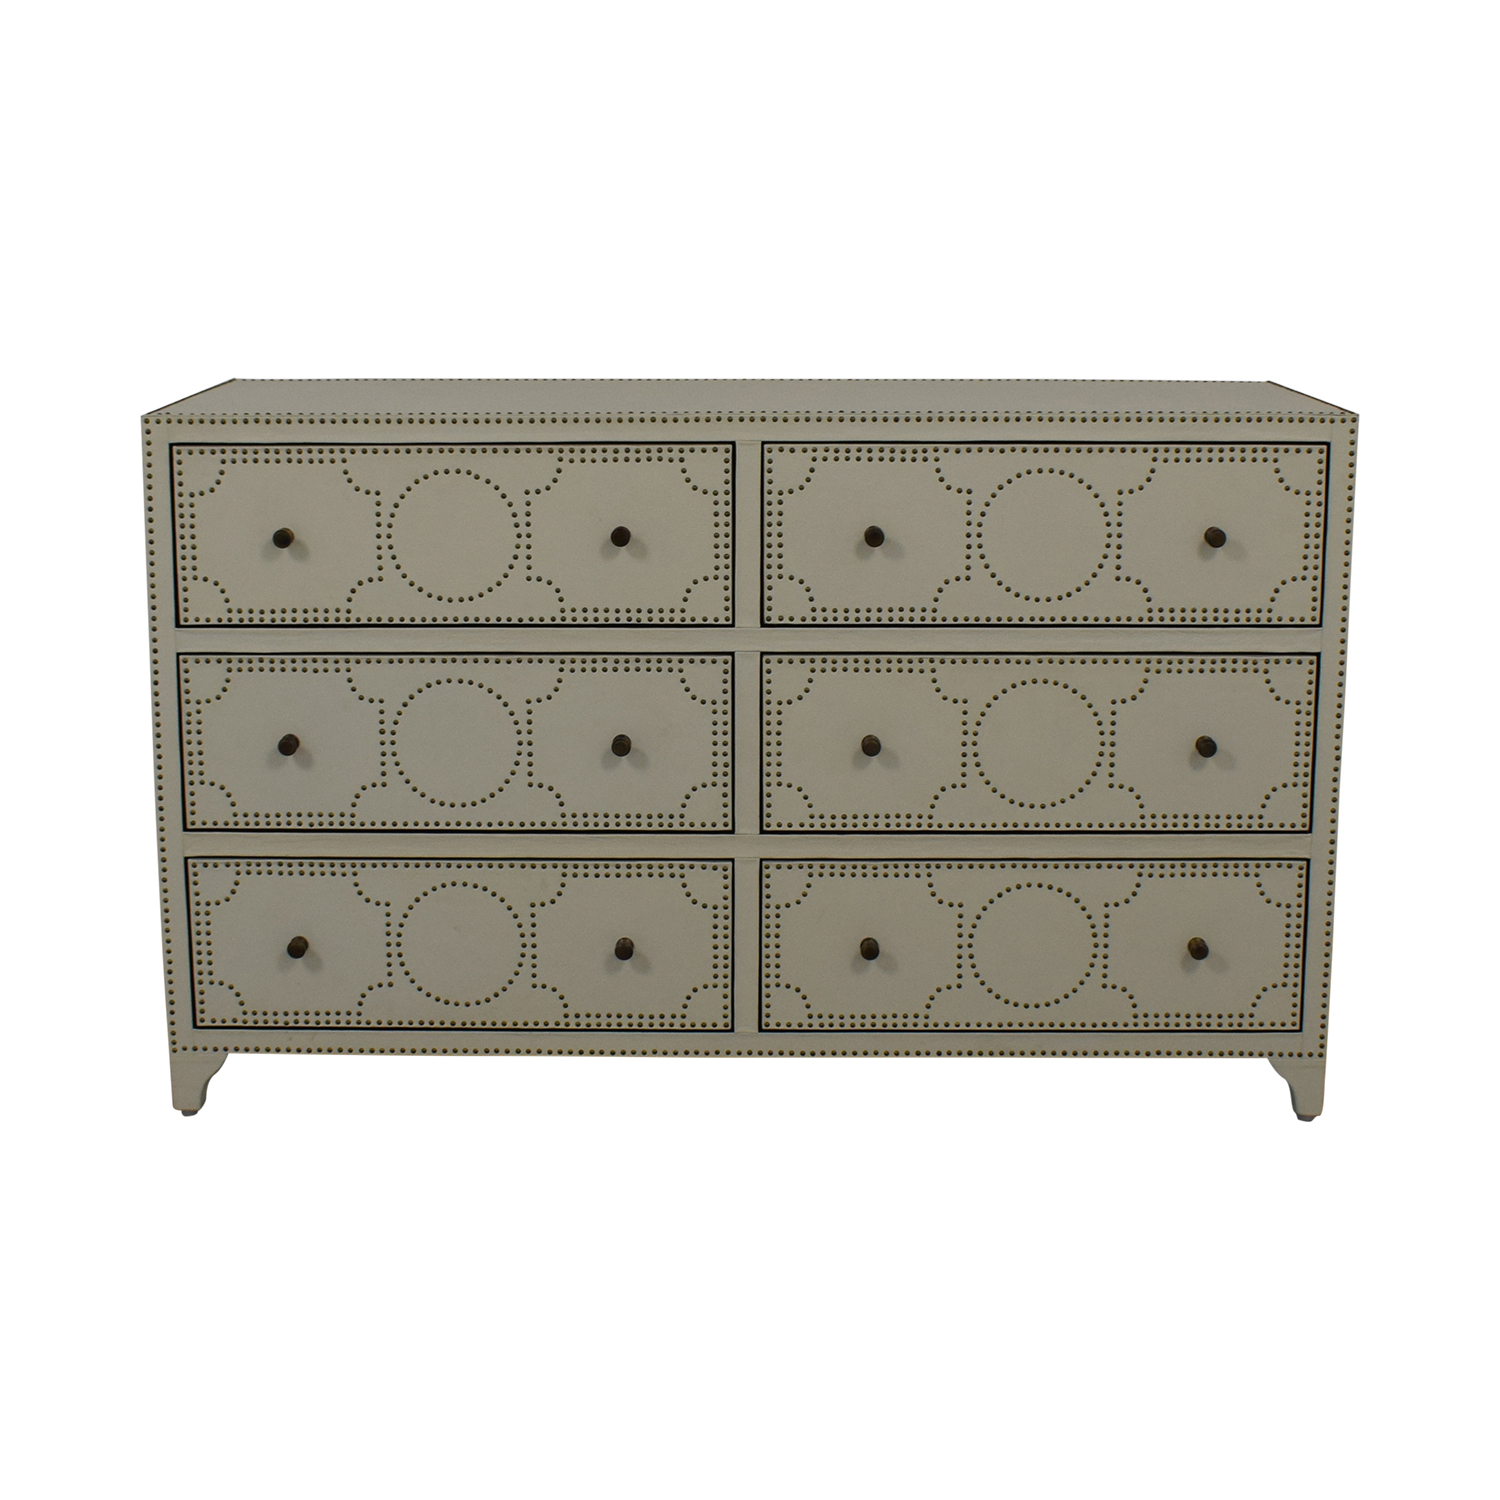 Restoration Hardware Restoration Hardware Nailhead Upholstered Dresser for sale